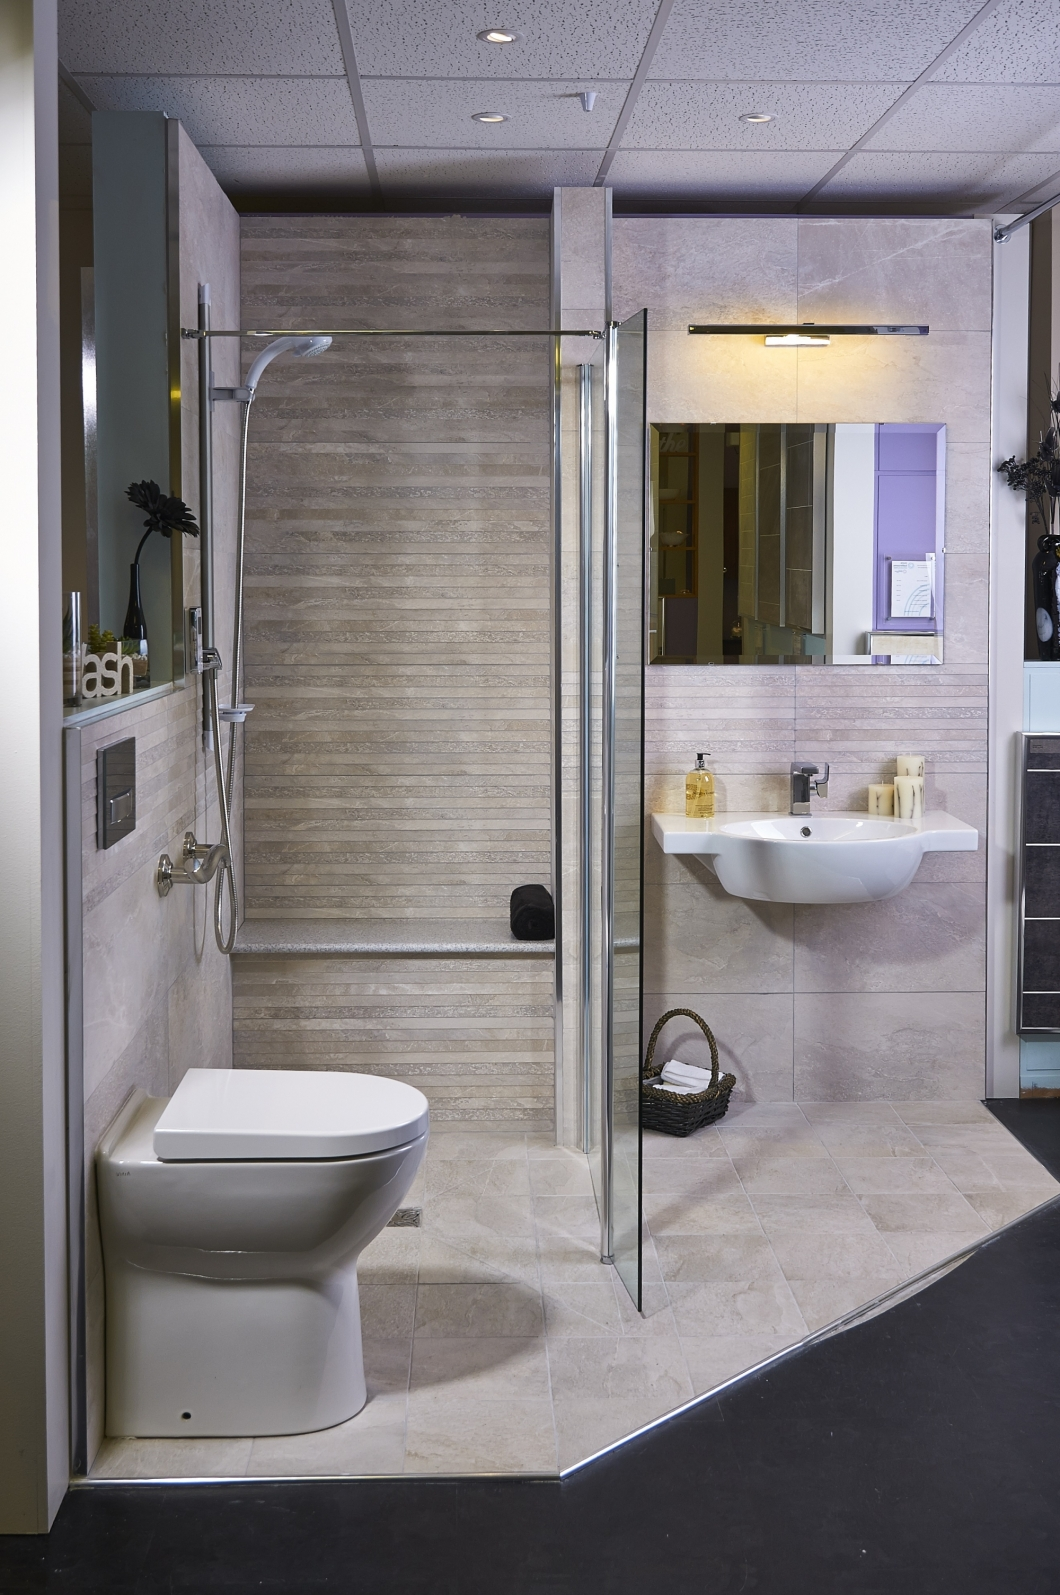 Stylish Amp Accessible Wet Floor Showers Design Amp Fit More